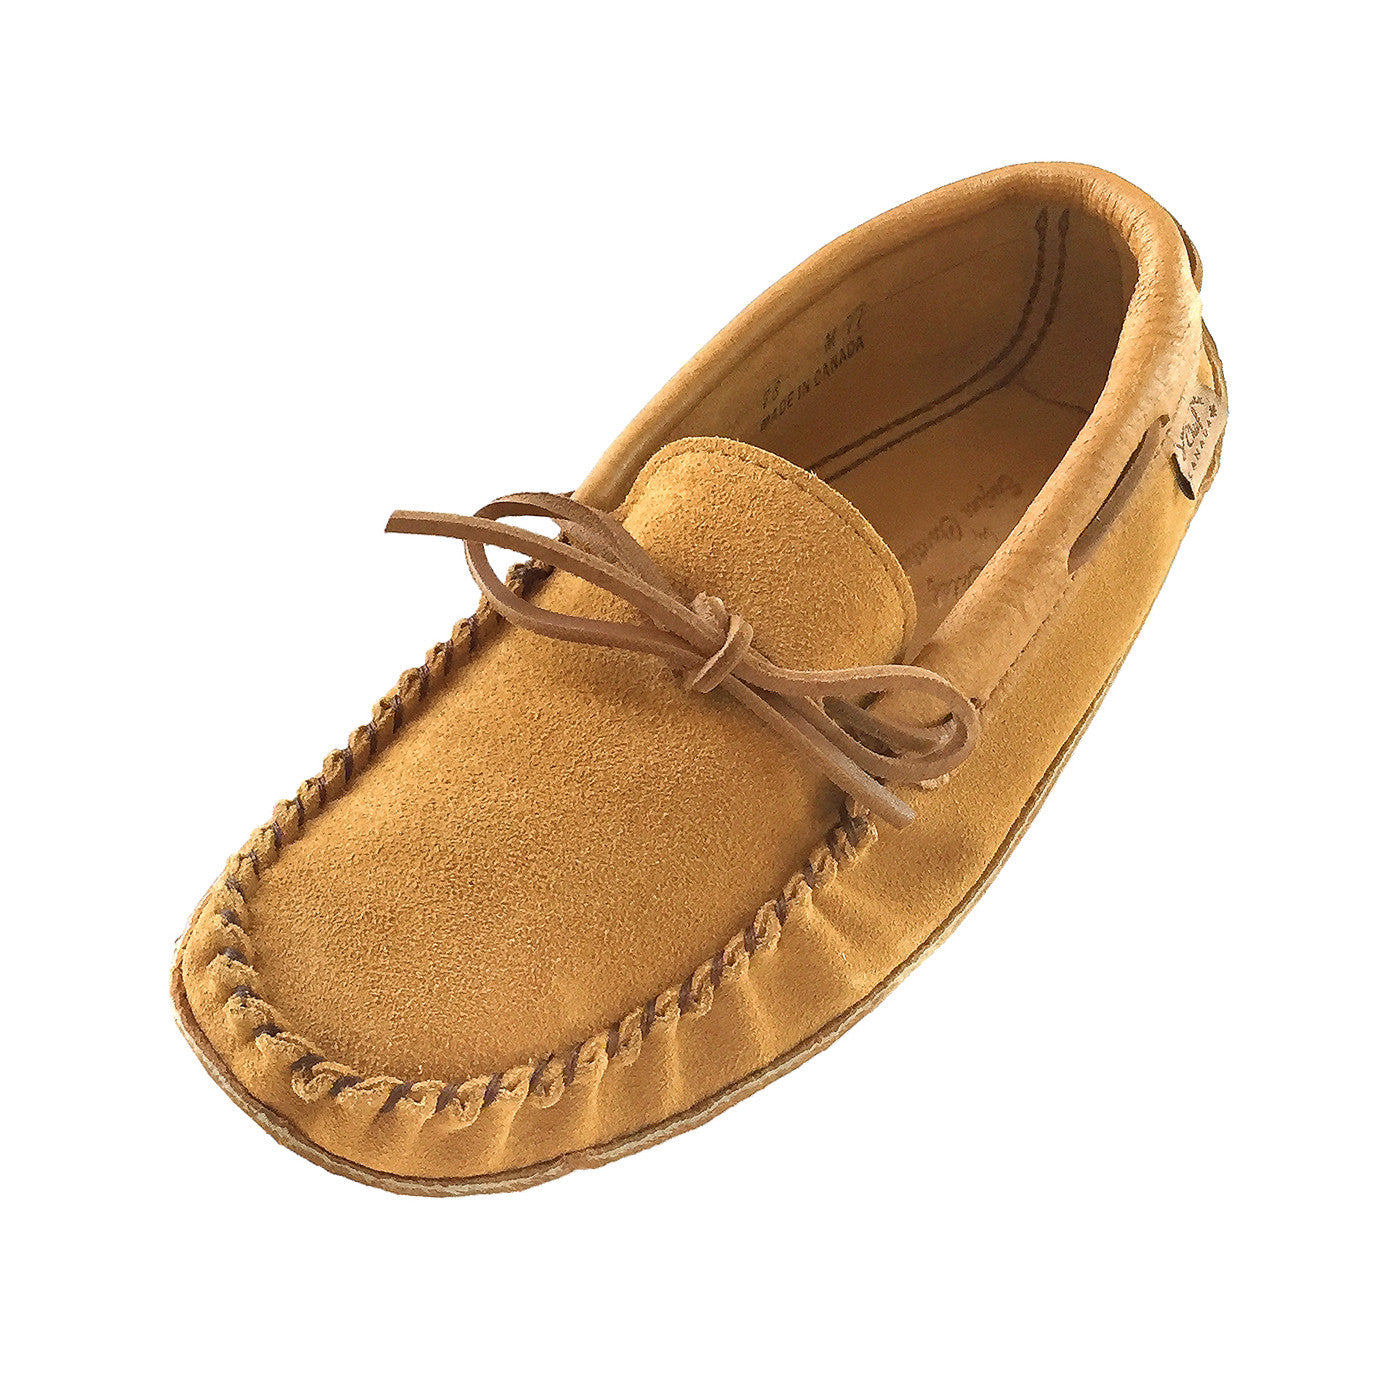 Men S Dark Tan Genuine Suede Soft Sole Indoor Casual Moccasin Slippers Leather Moccasins